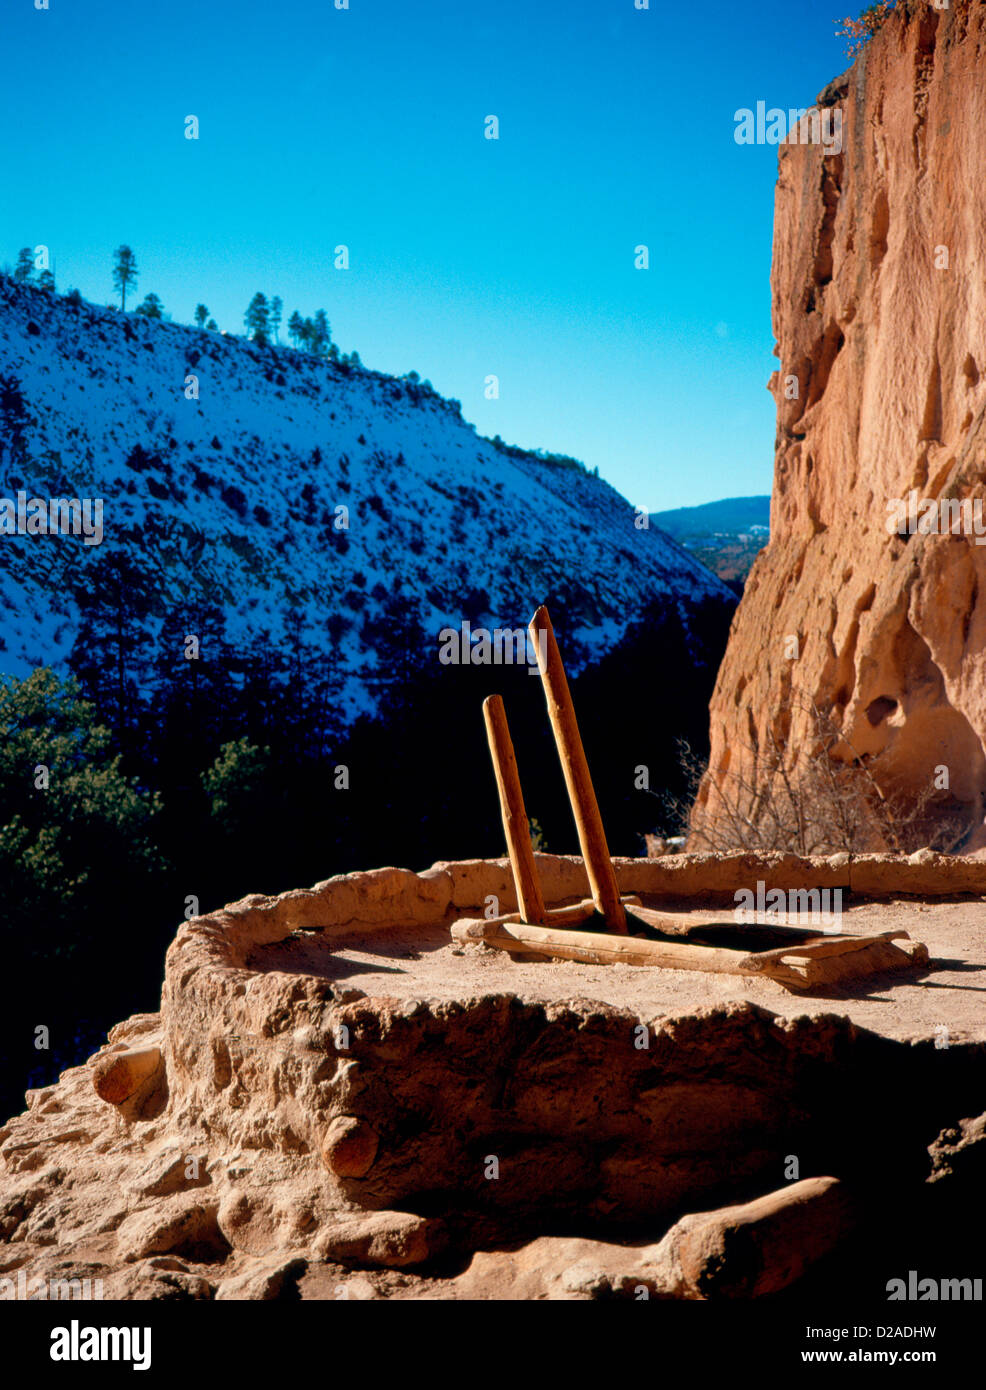 New Mexico. Bandelier National Monument. Anasazi Kiva, With Top Of Ladder Showing - Stock Image